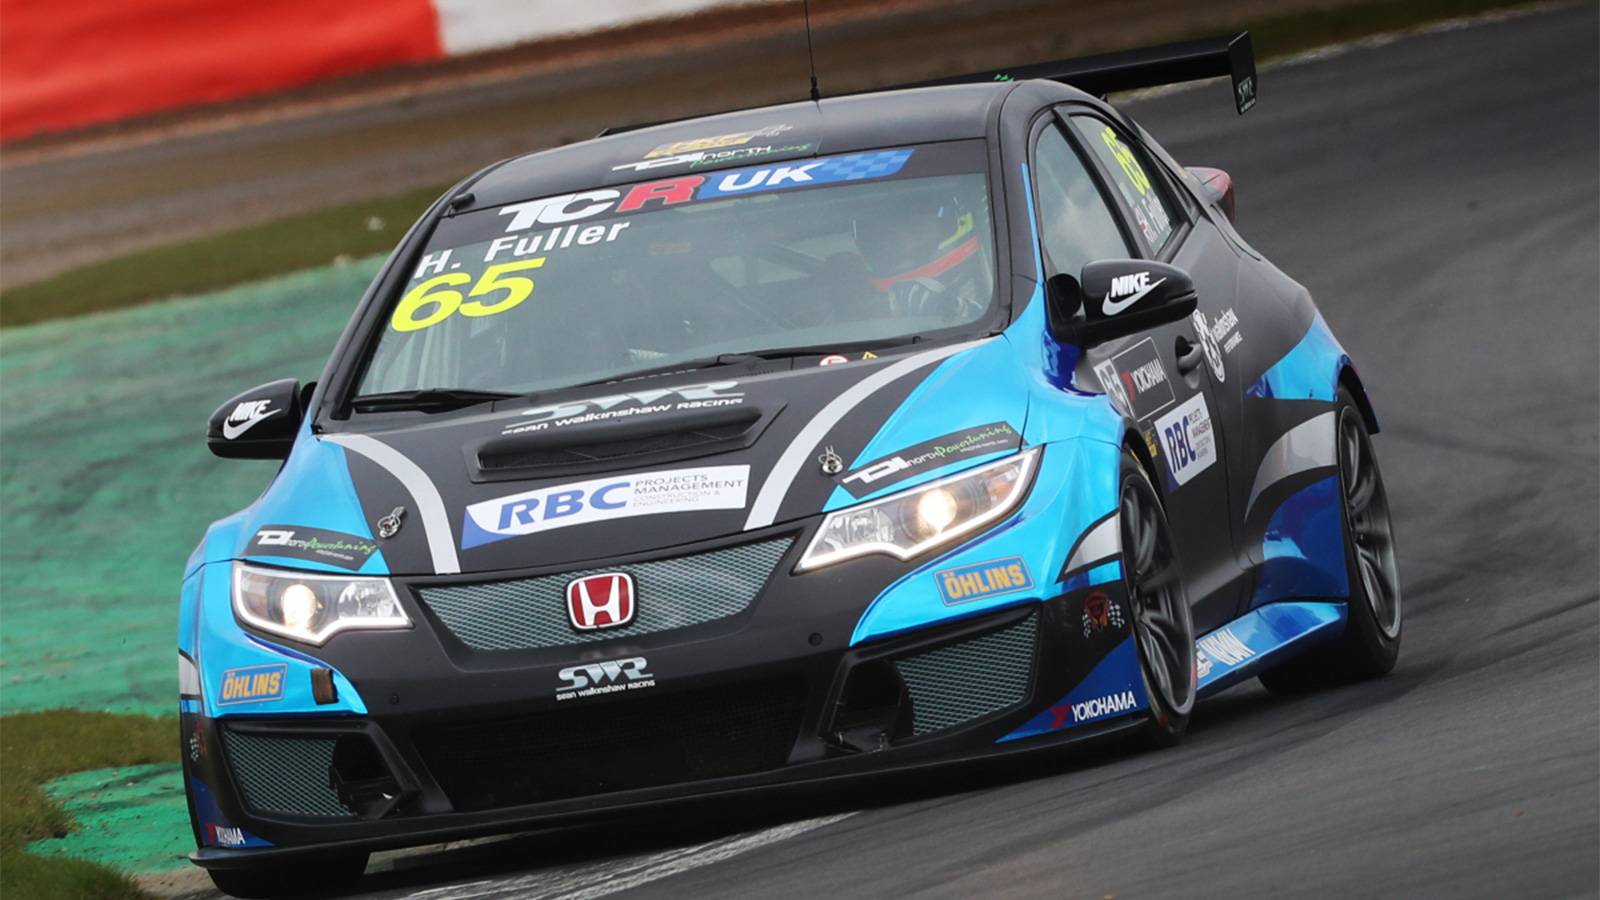 Howard Fuller happy with racing return at wheel of Honda Civic